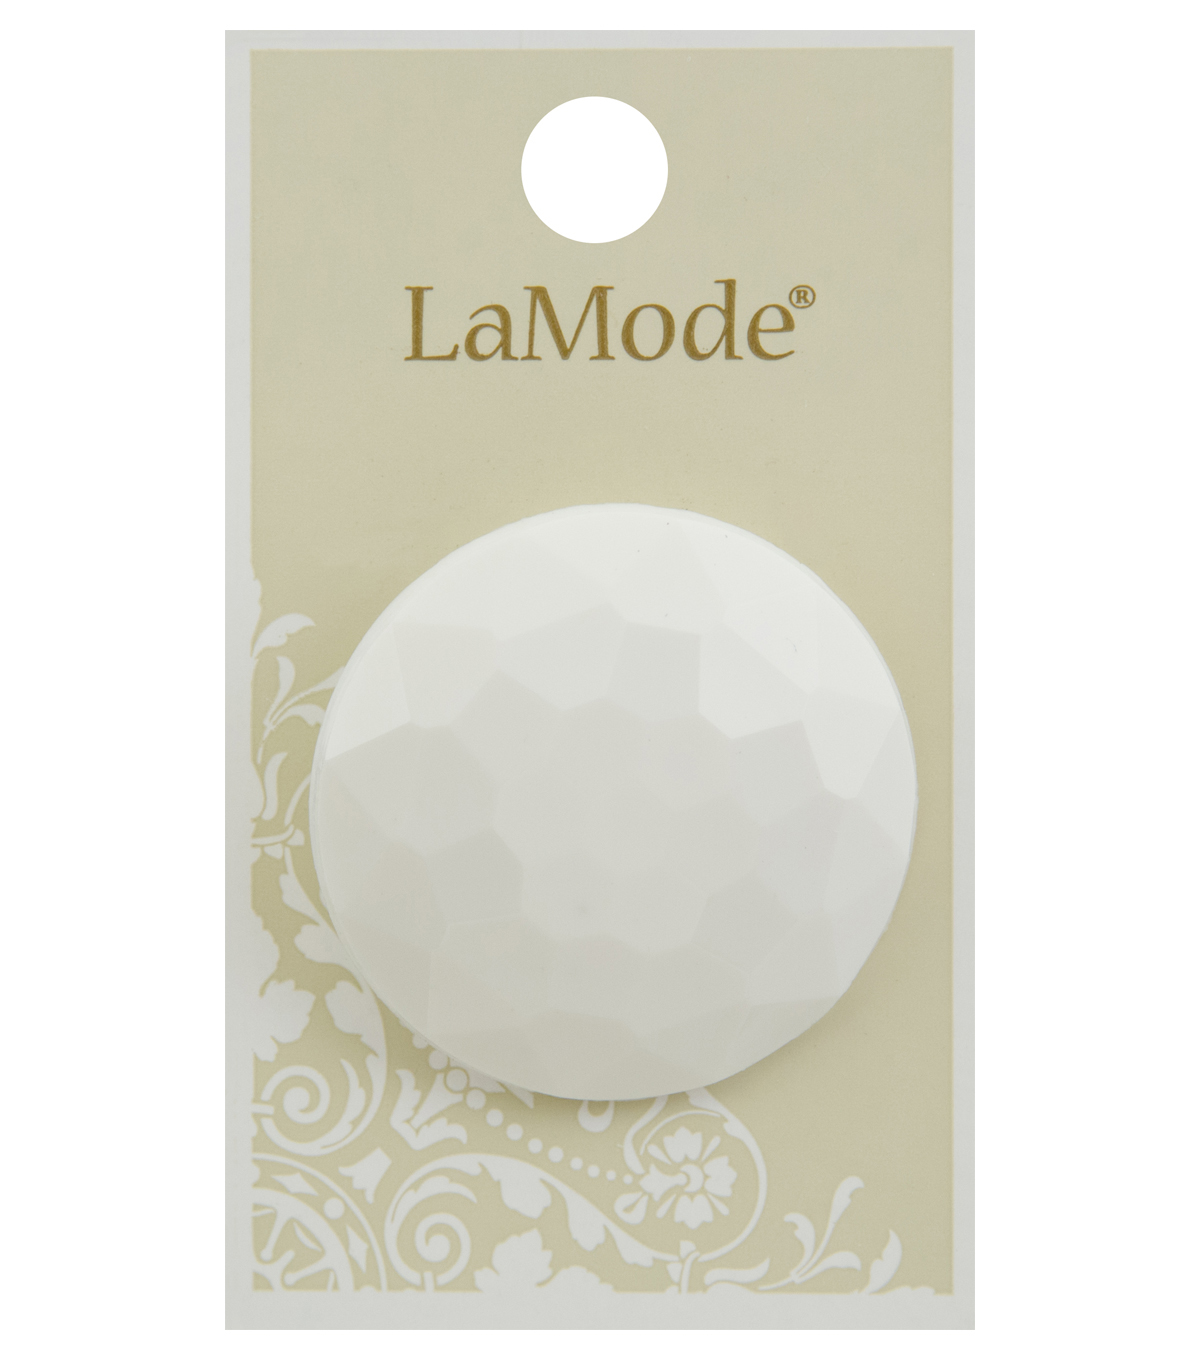 La Mode 1.5\u0027\u0027 Shank Button-White